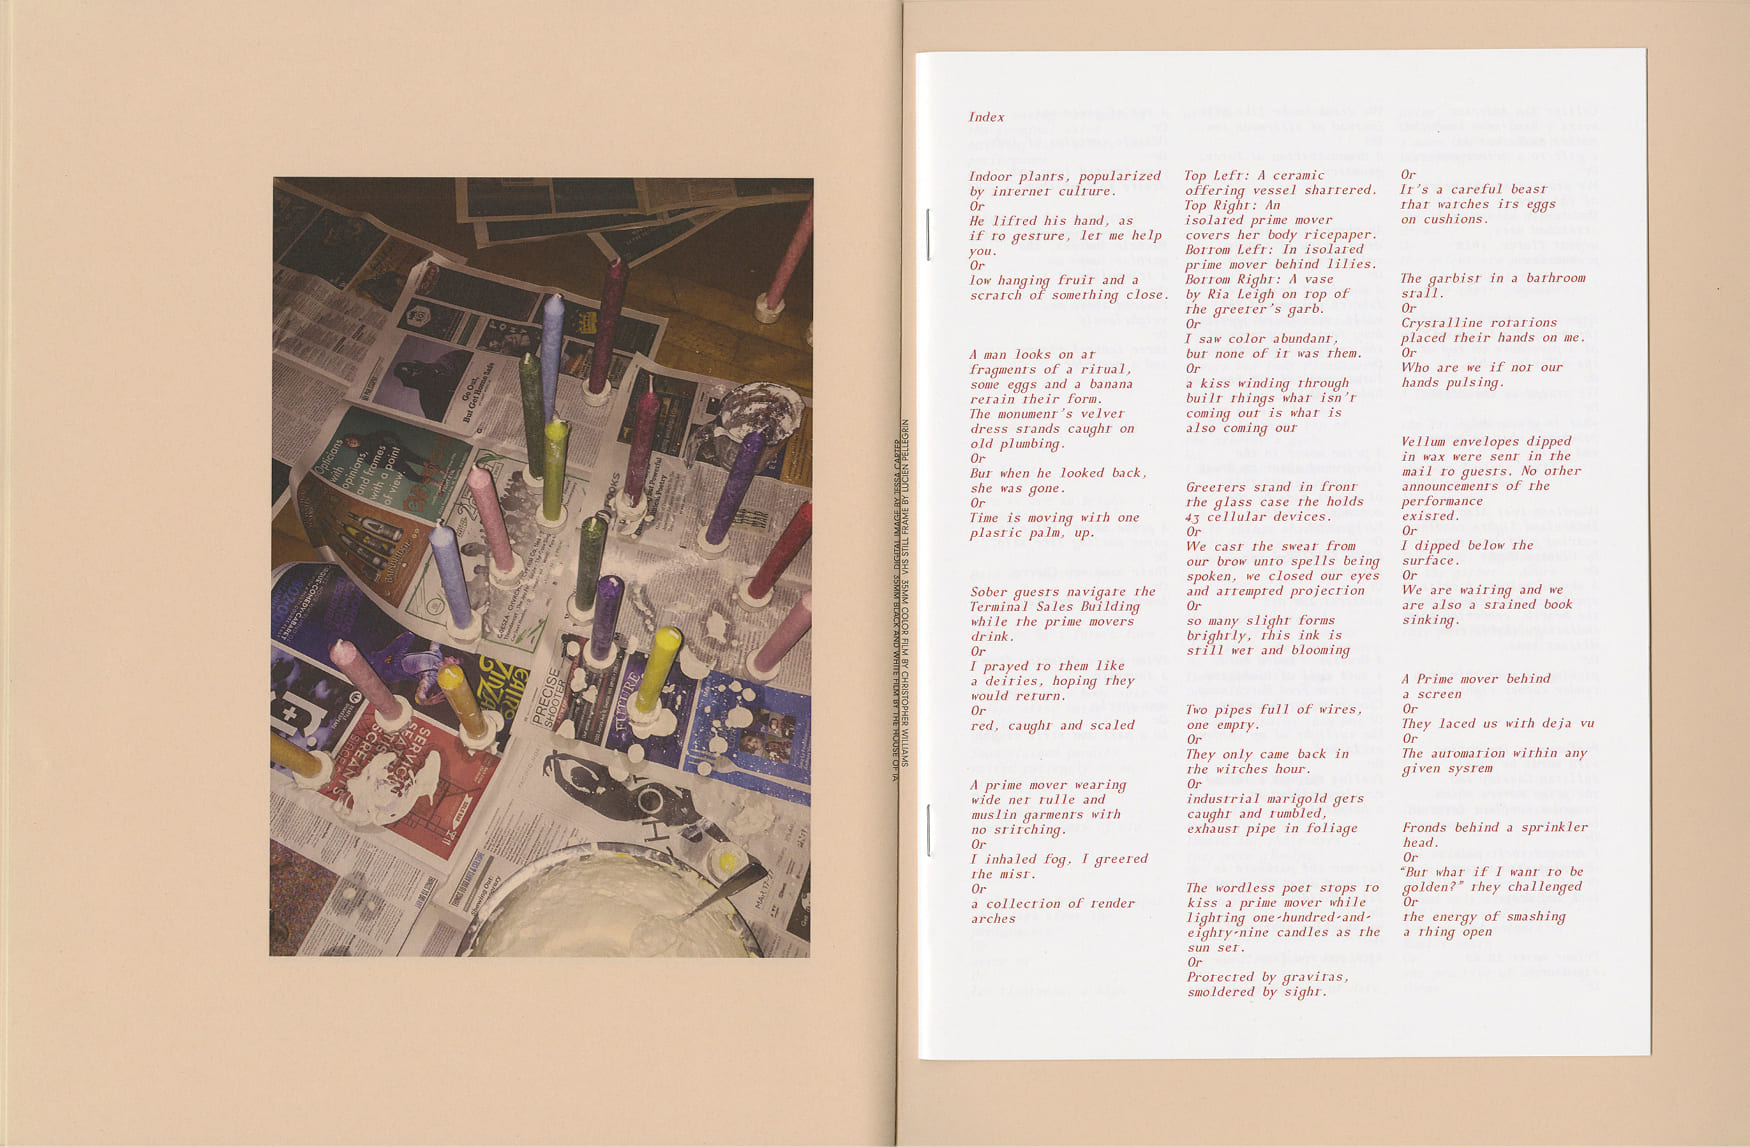 A book splayed open fills the frame, with an image of colorful candles on top of newspaper on the left, and on the right lays a smaller book consisting only of small red type, describing all of the images contained in the larger book.